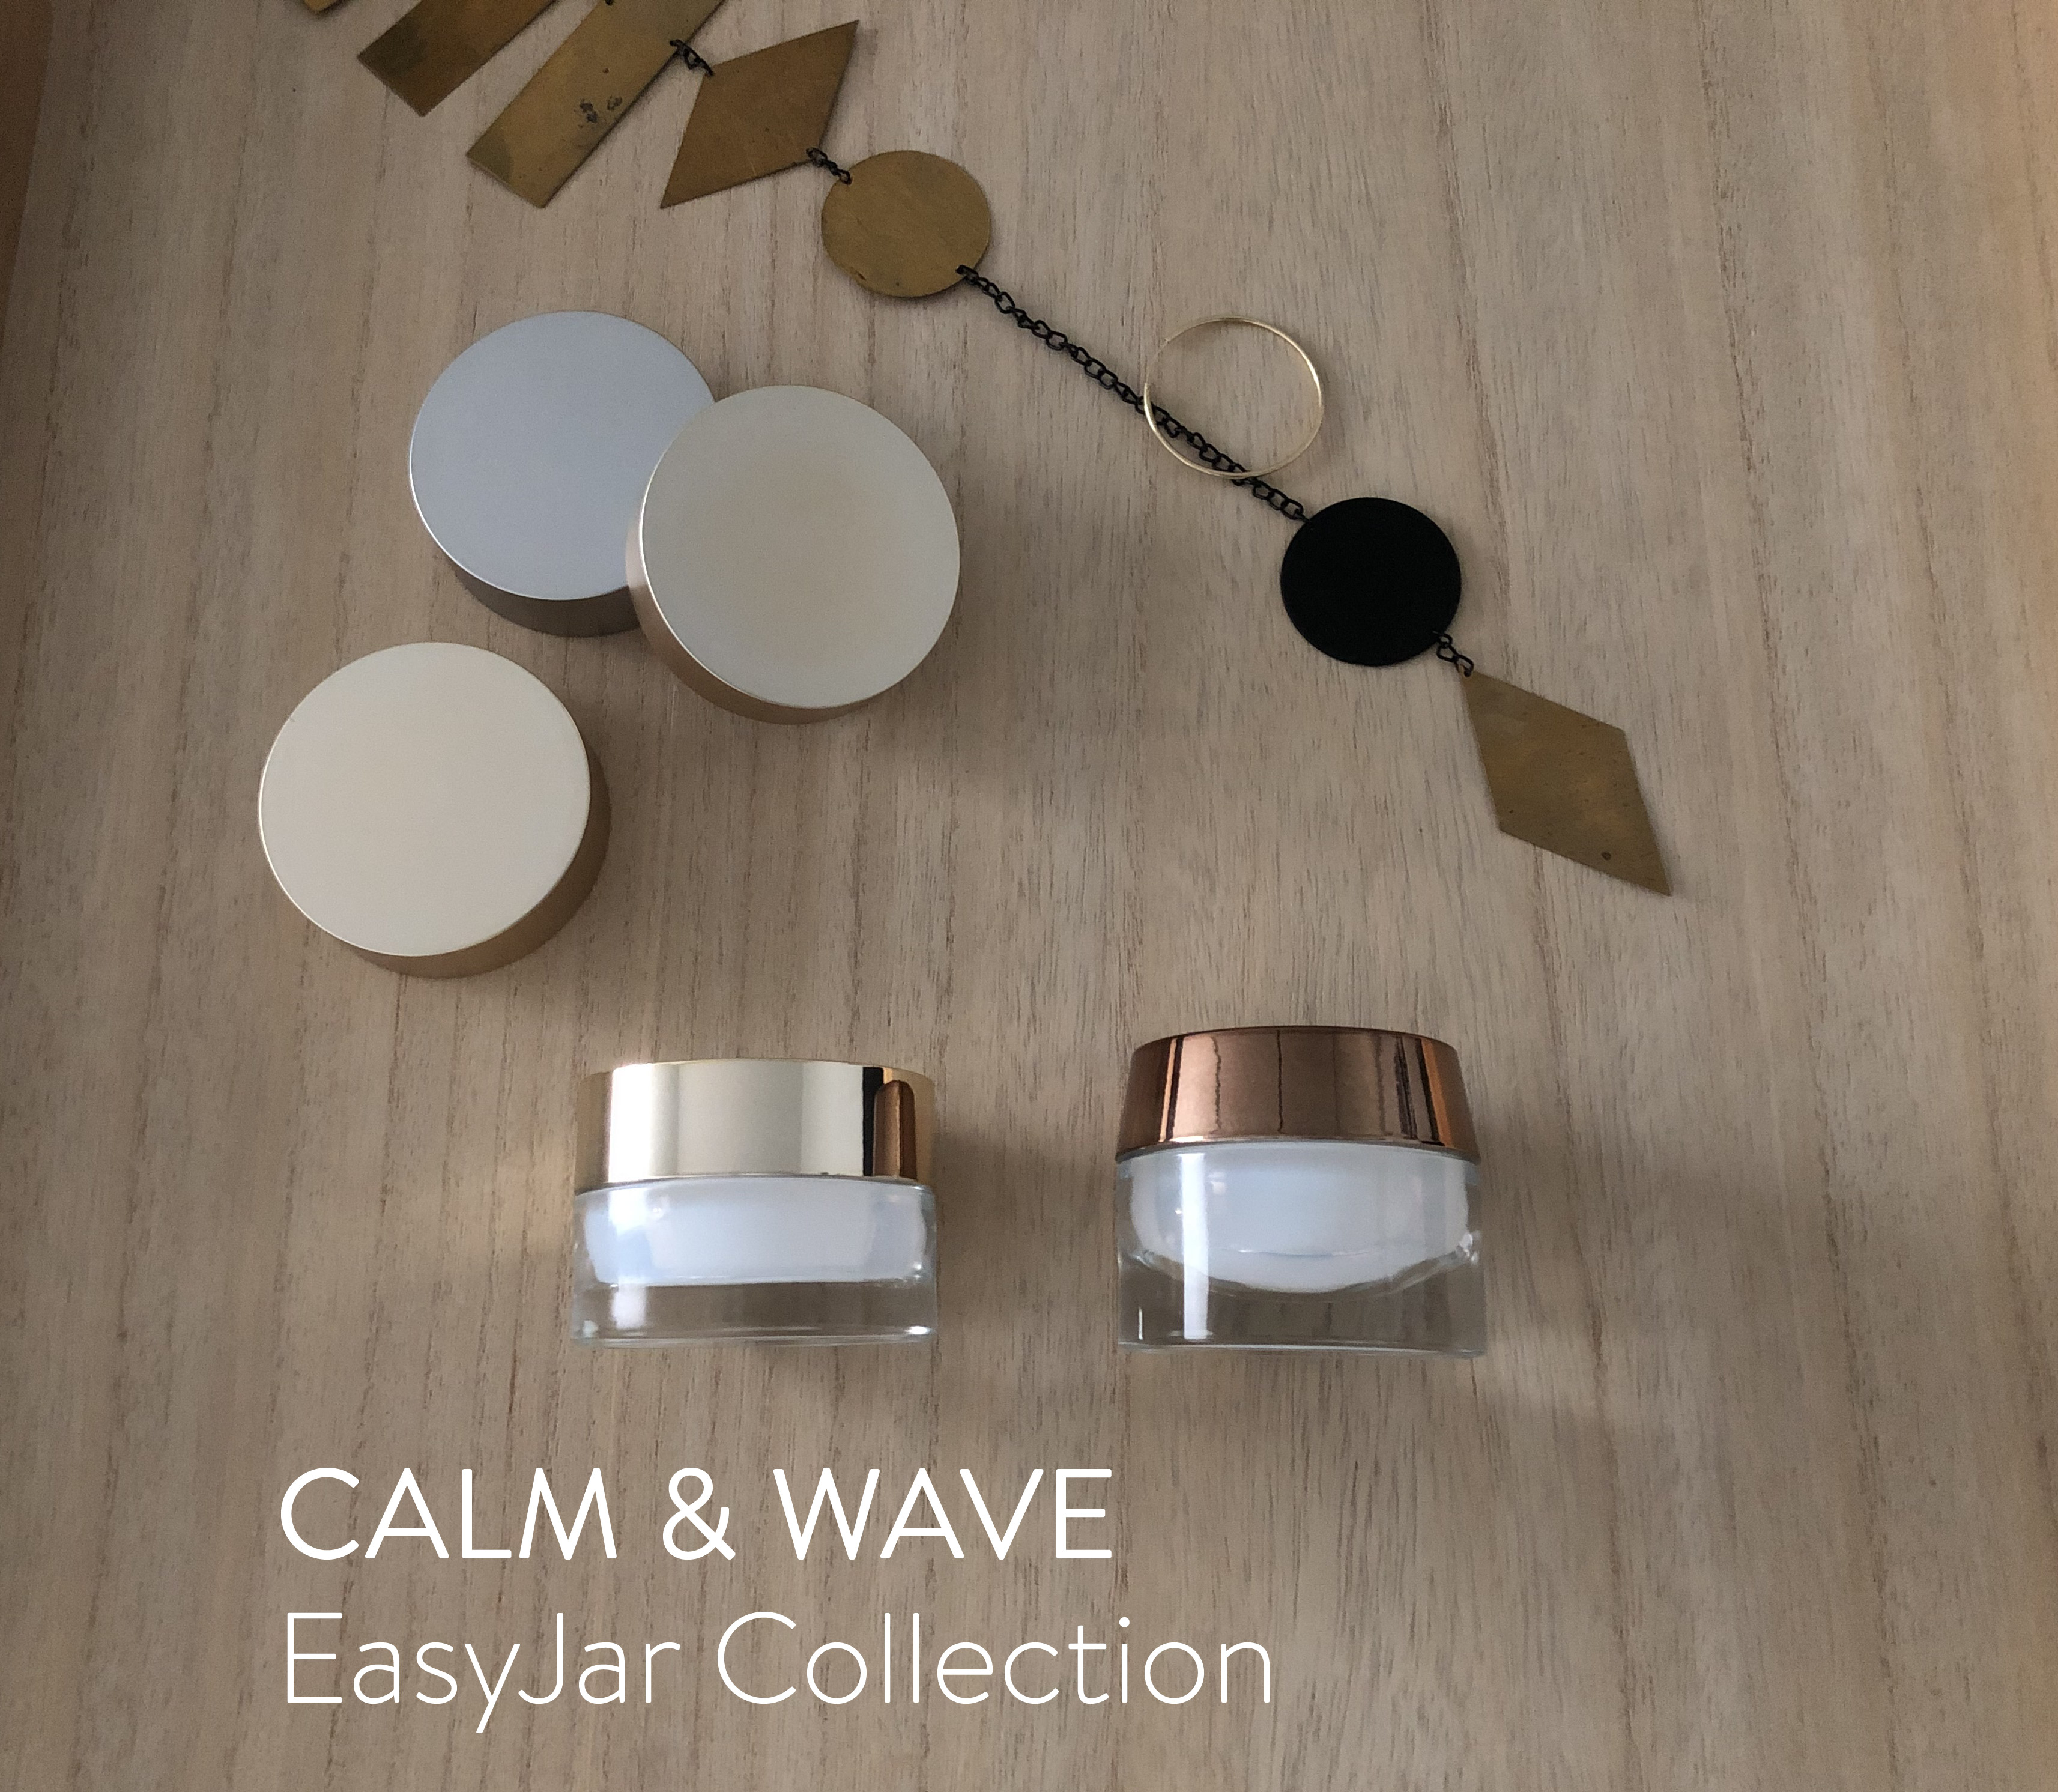 EASY JAR, beauty, design and value.